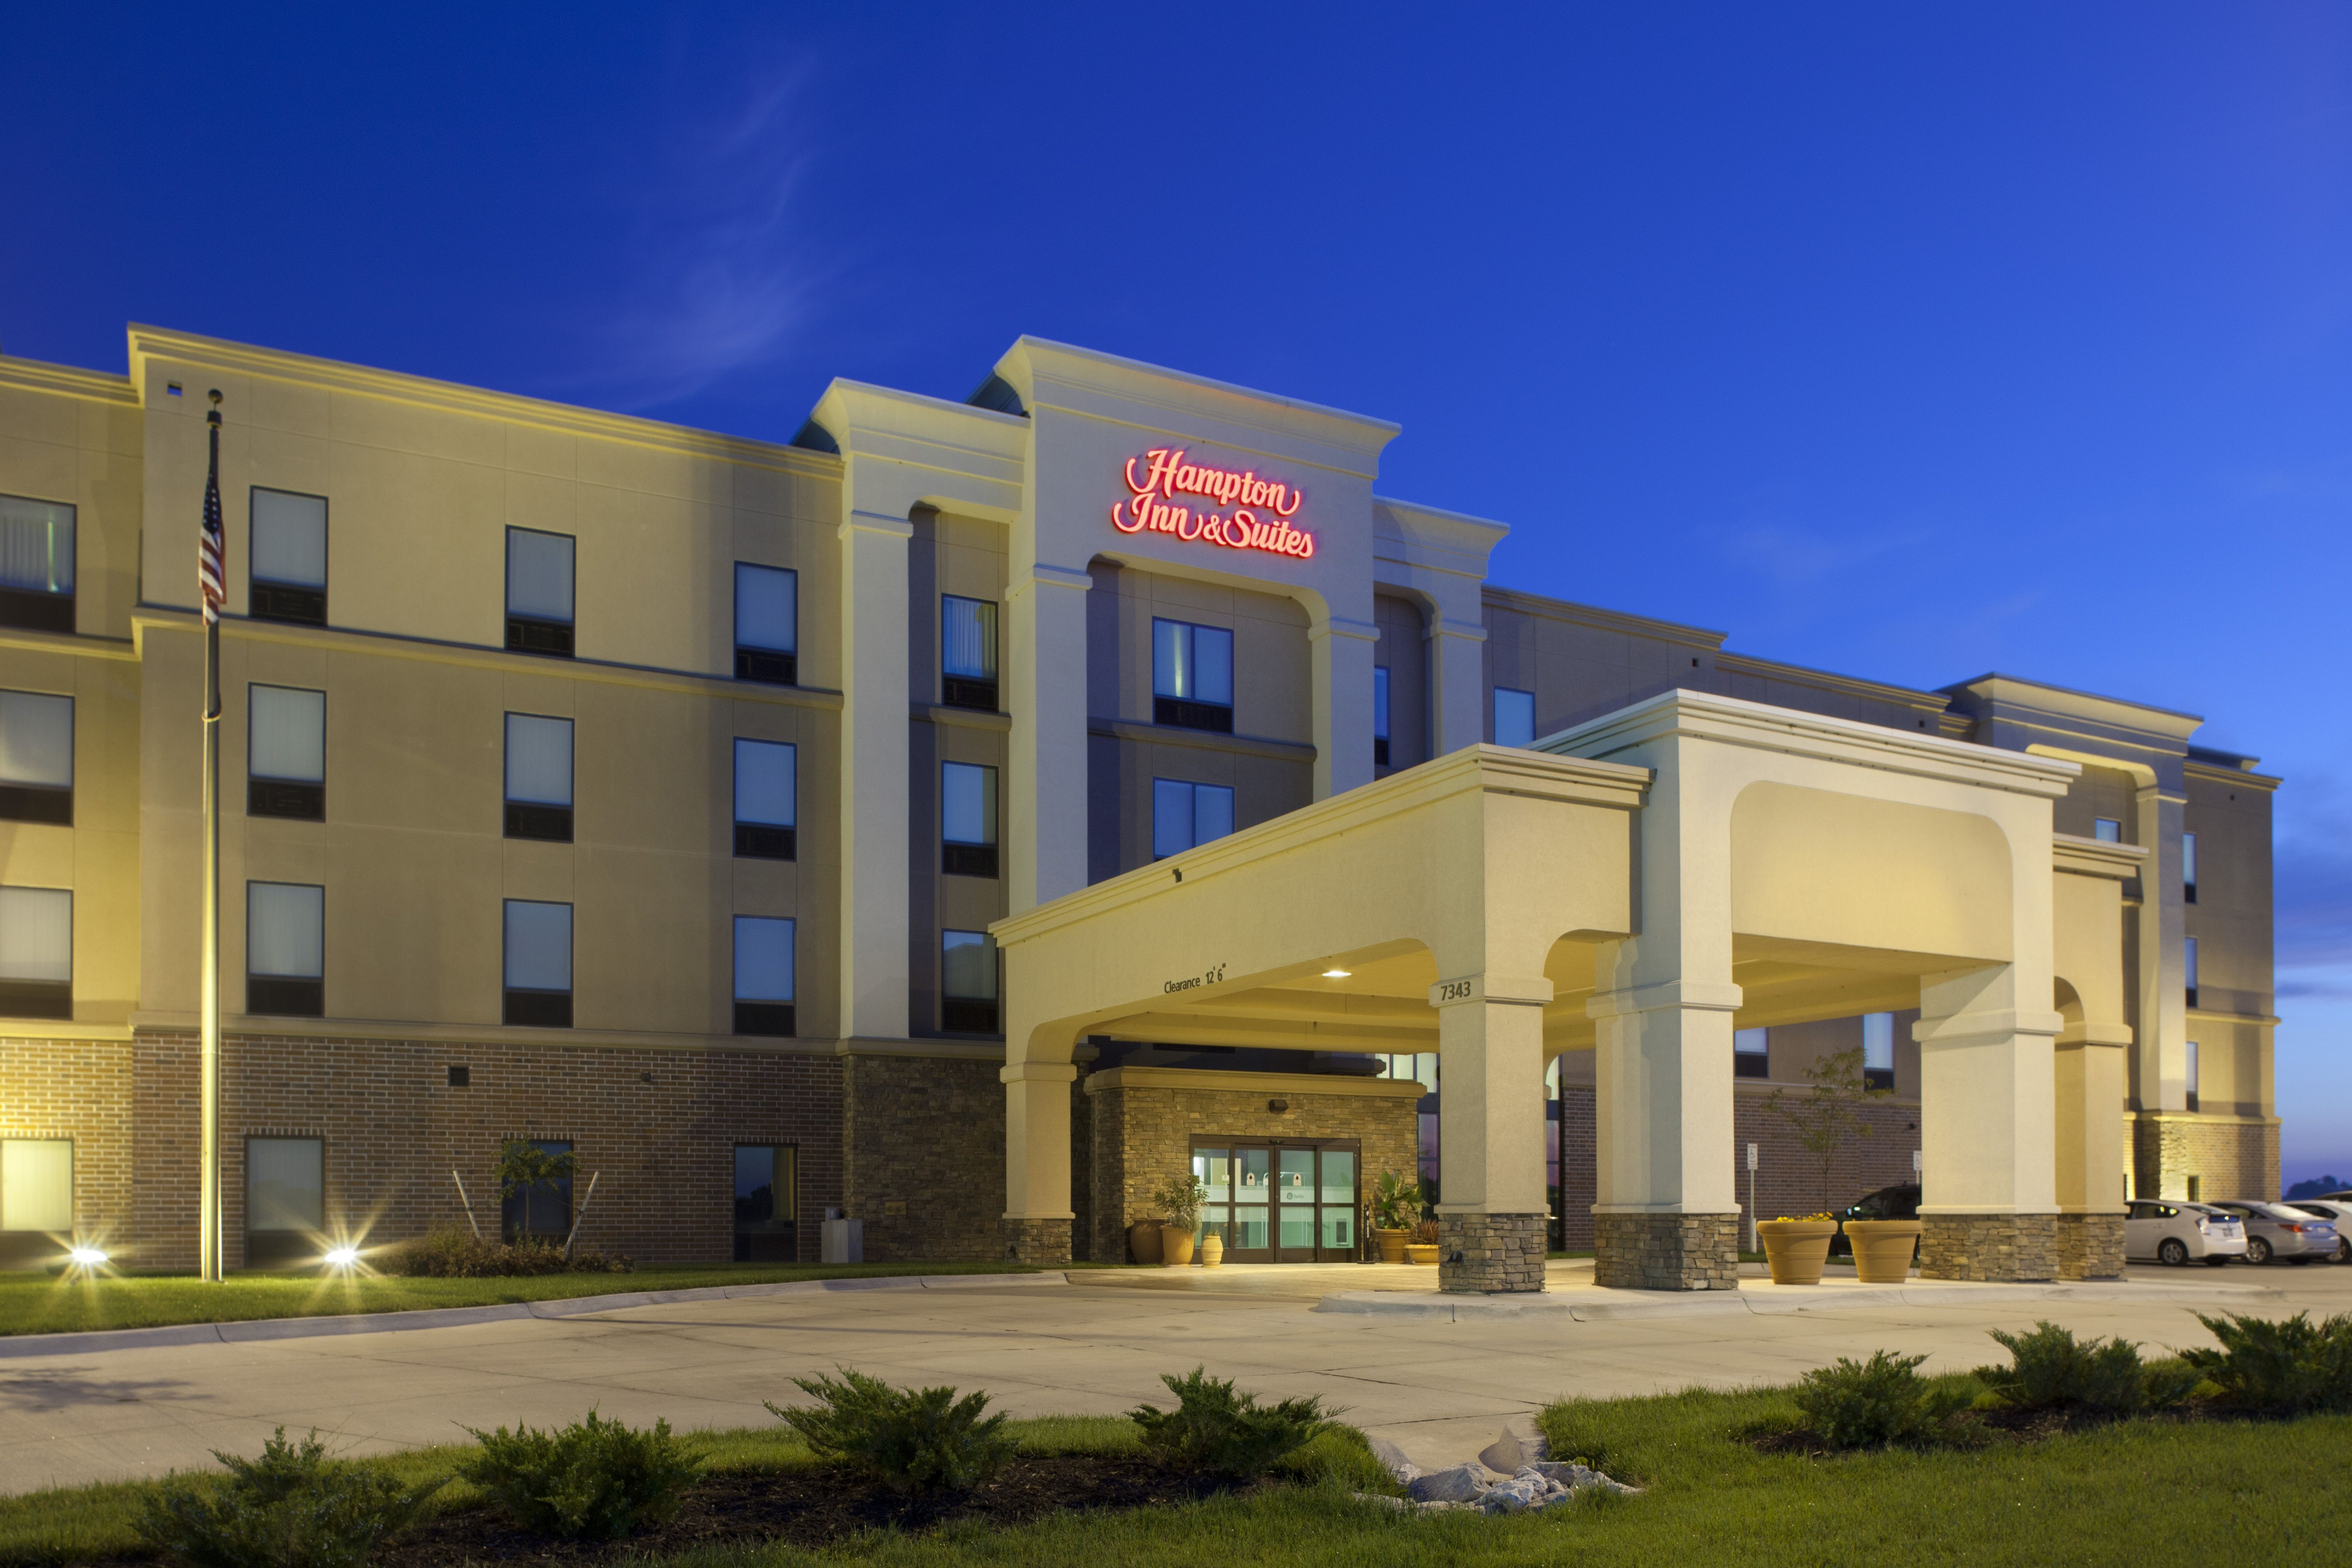 Hampton Inn And Suites Lincoln Nebraska Whether You Come To Lincoln For Football Games Held At Memorial Stadium Or Shopping In T Hampton Inn Indoor Pool Inn